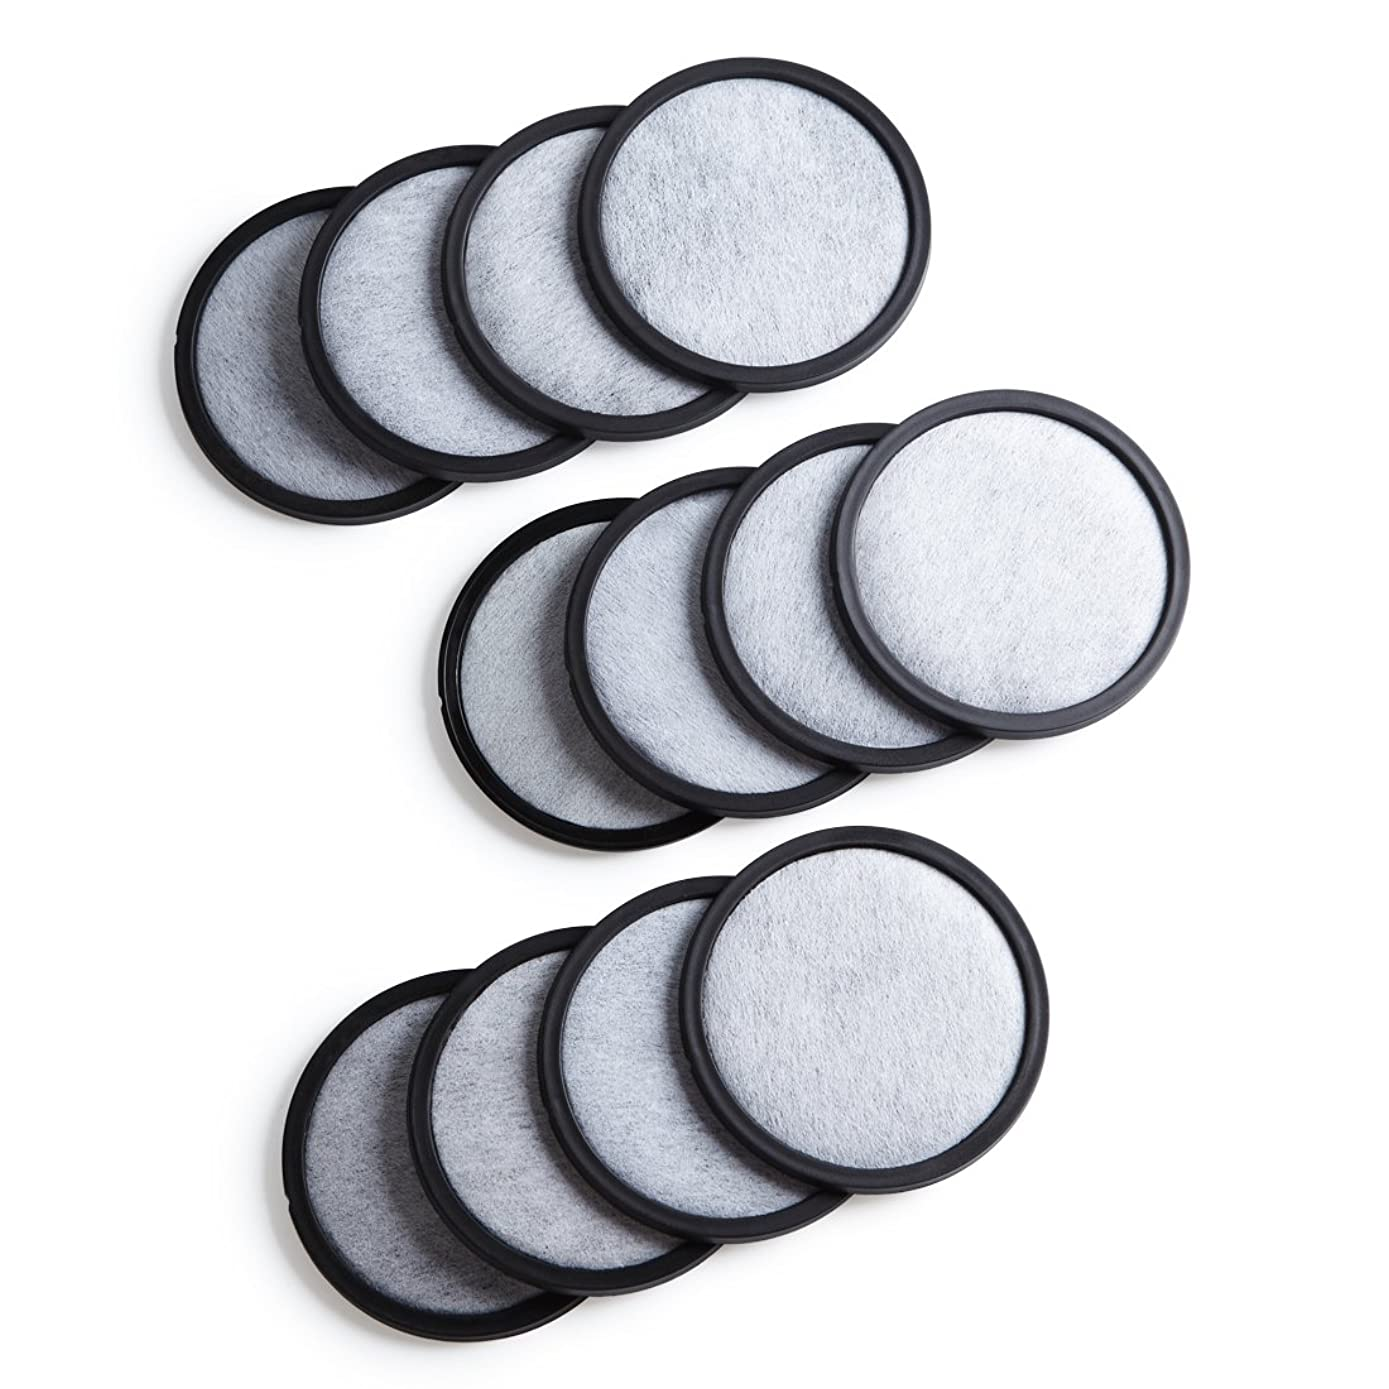 Geesta 12-Pack Premium Activated Charcoal Water Filter Disk for All Mr. Coffee Models